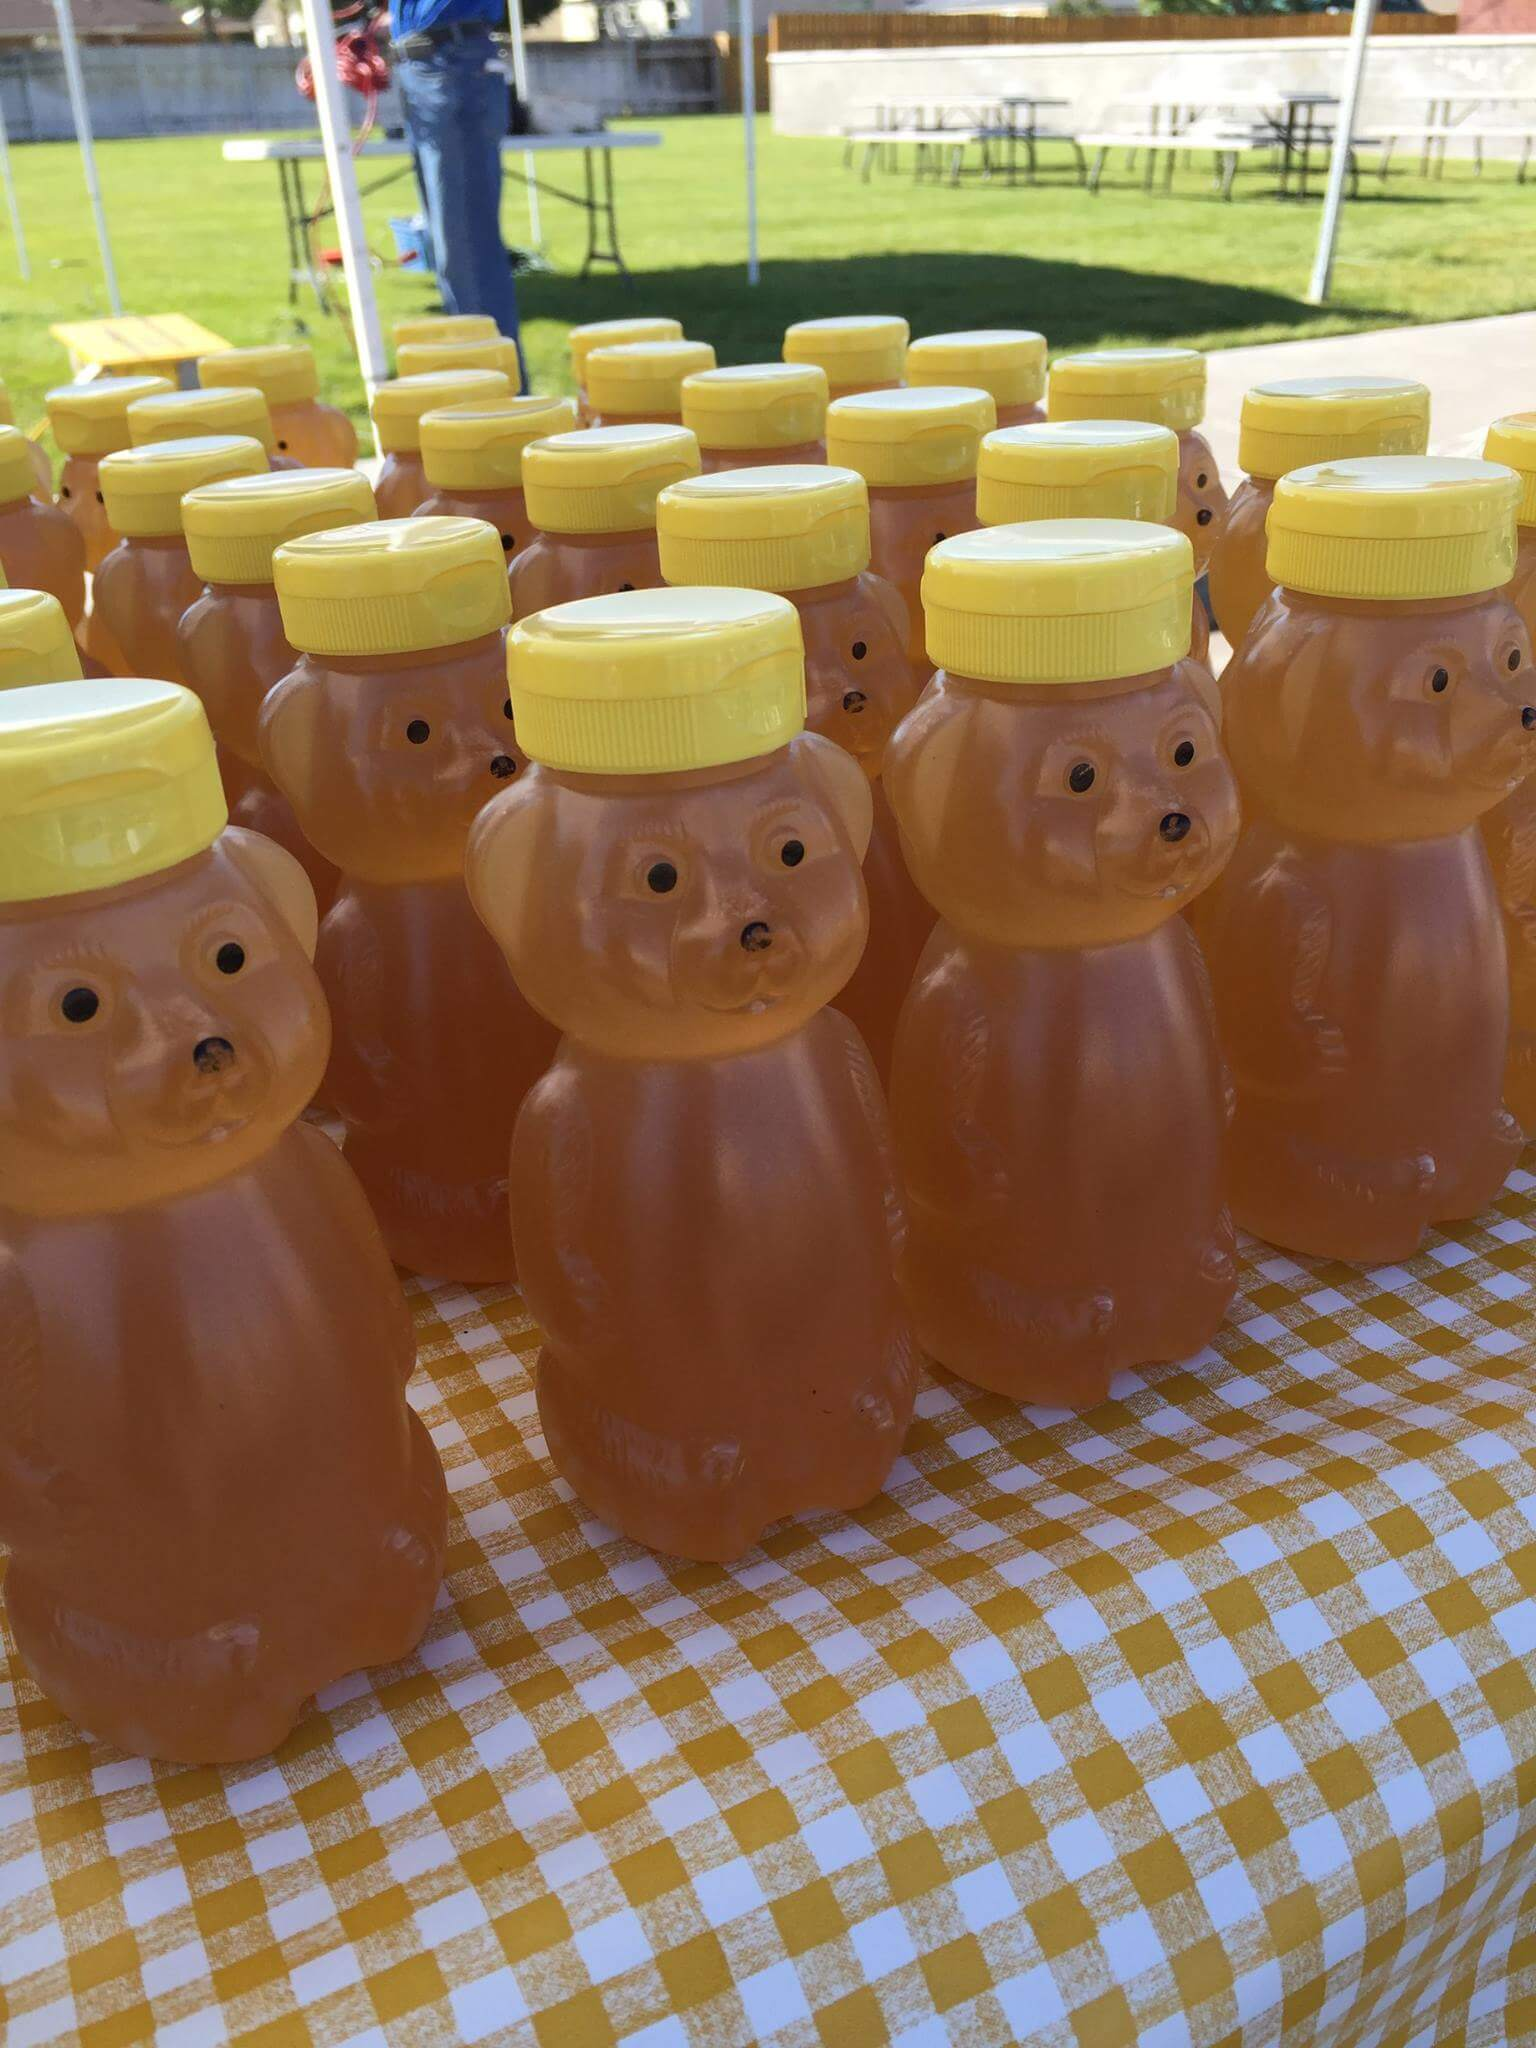 Hick's Honey at the Rexburg Farmer's Market